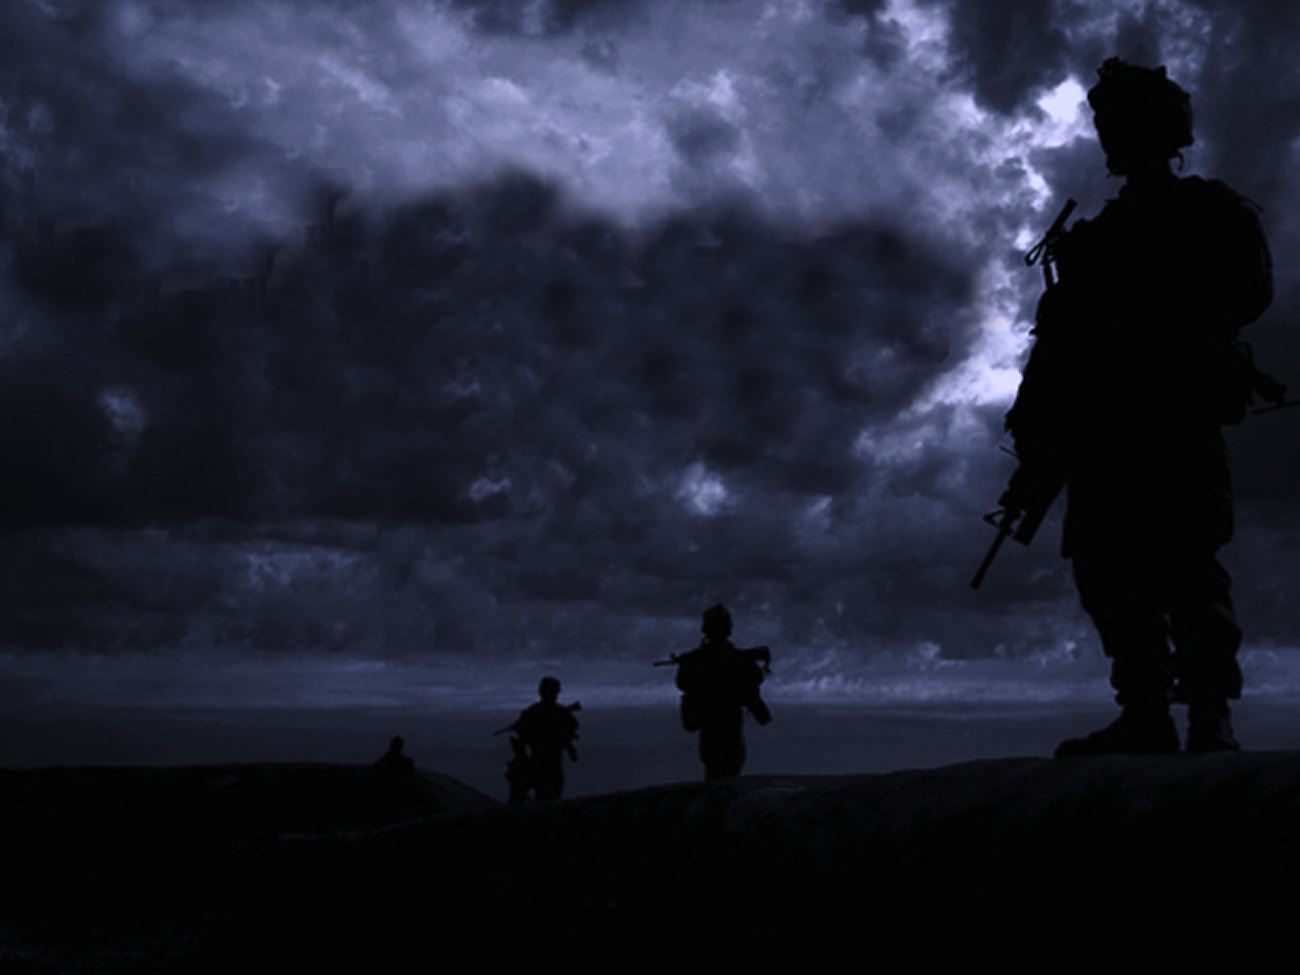 heroes unleashed ghost recon mod